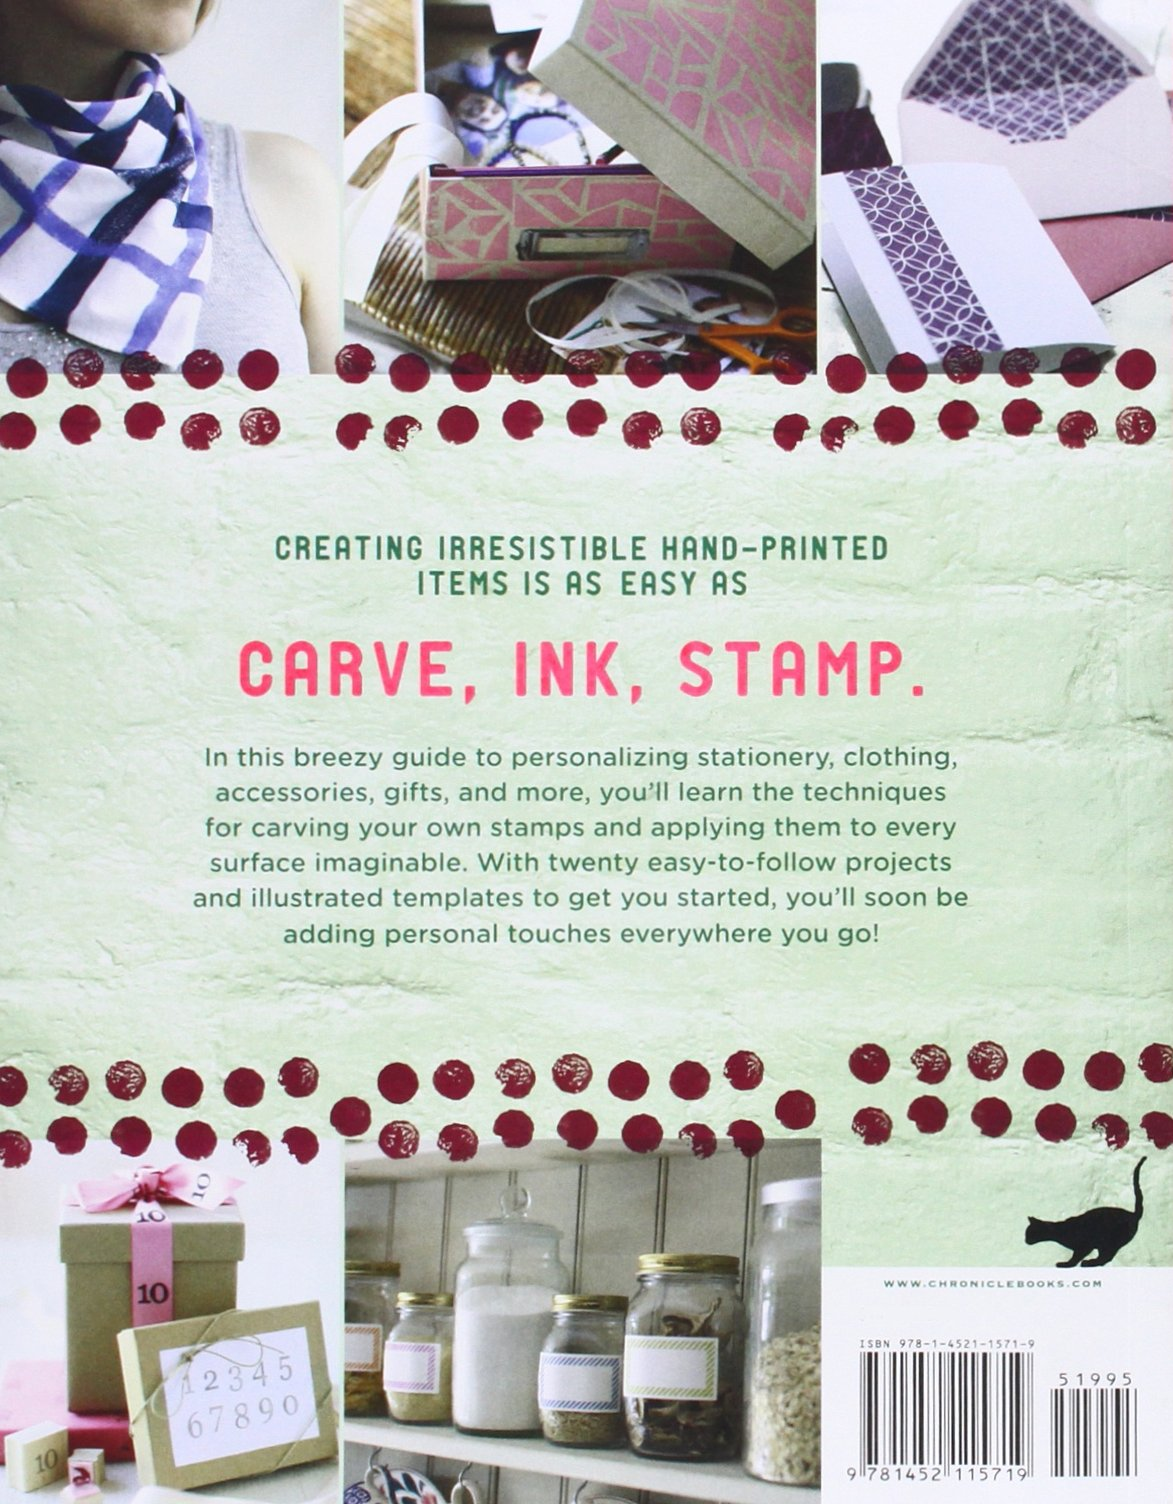 Put Your Stamp on It: 20 Adorable Projects, Plus Instructions for Hand-Carving Beautiful Stamps by Chronicle Books (Image #2)